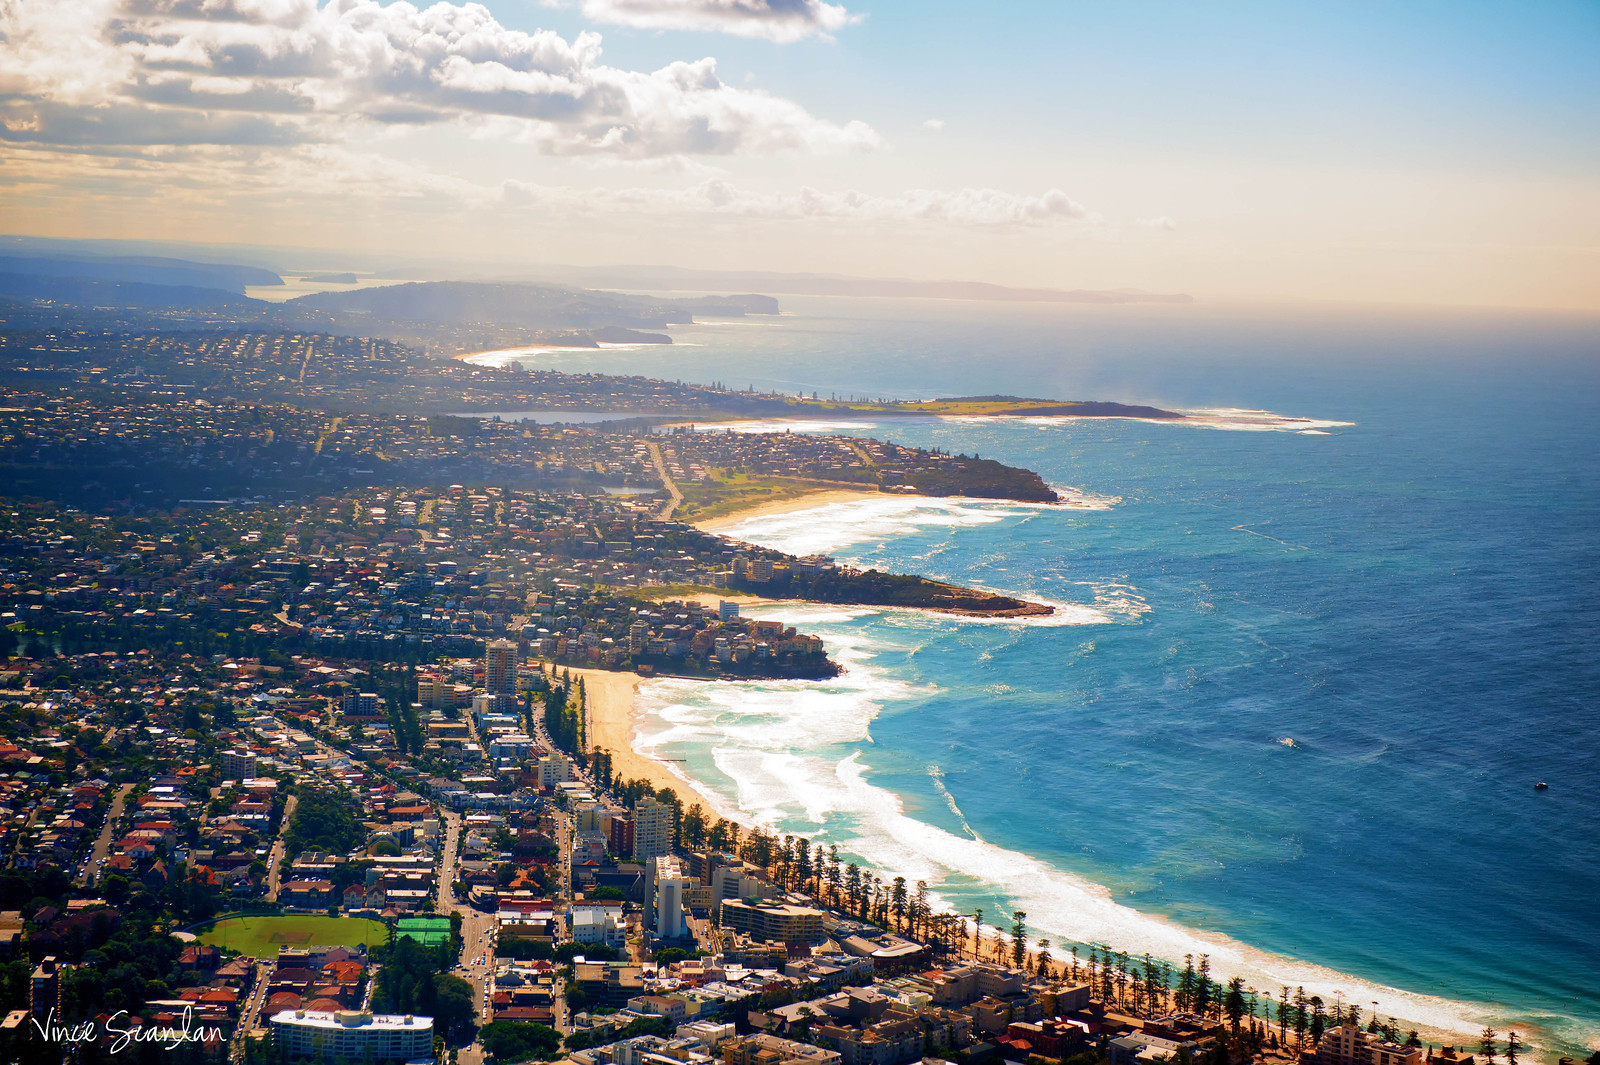 Bondi Beach by Air